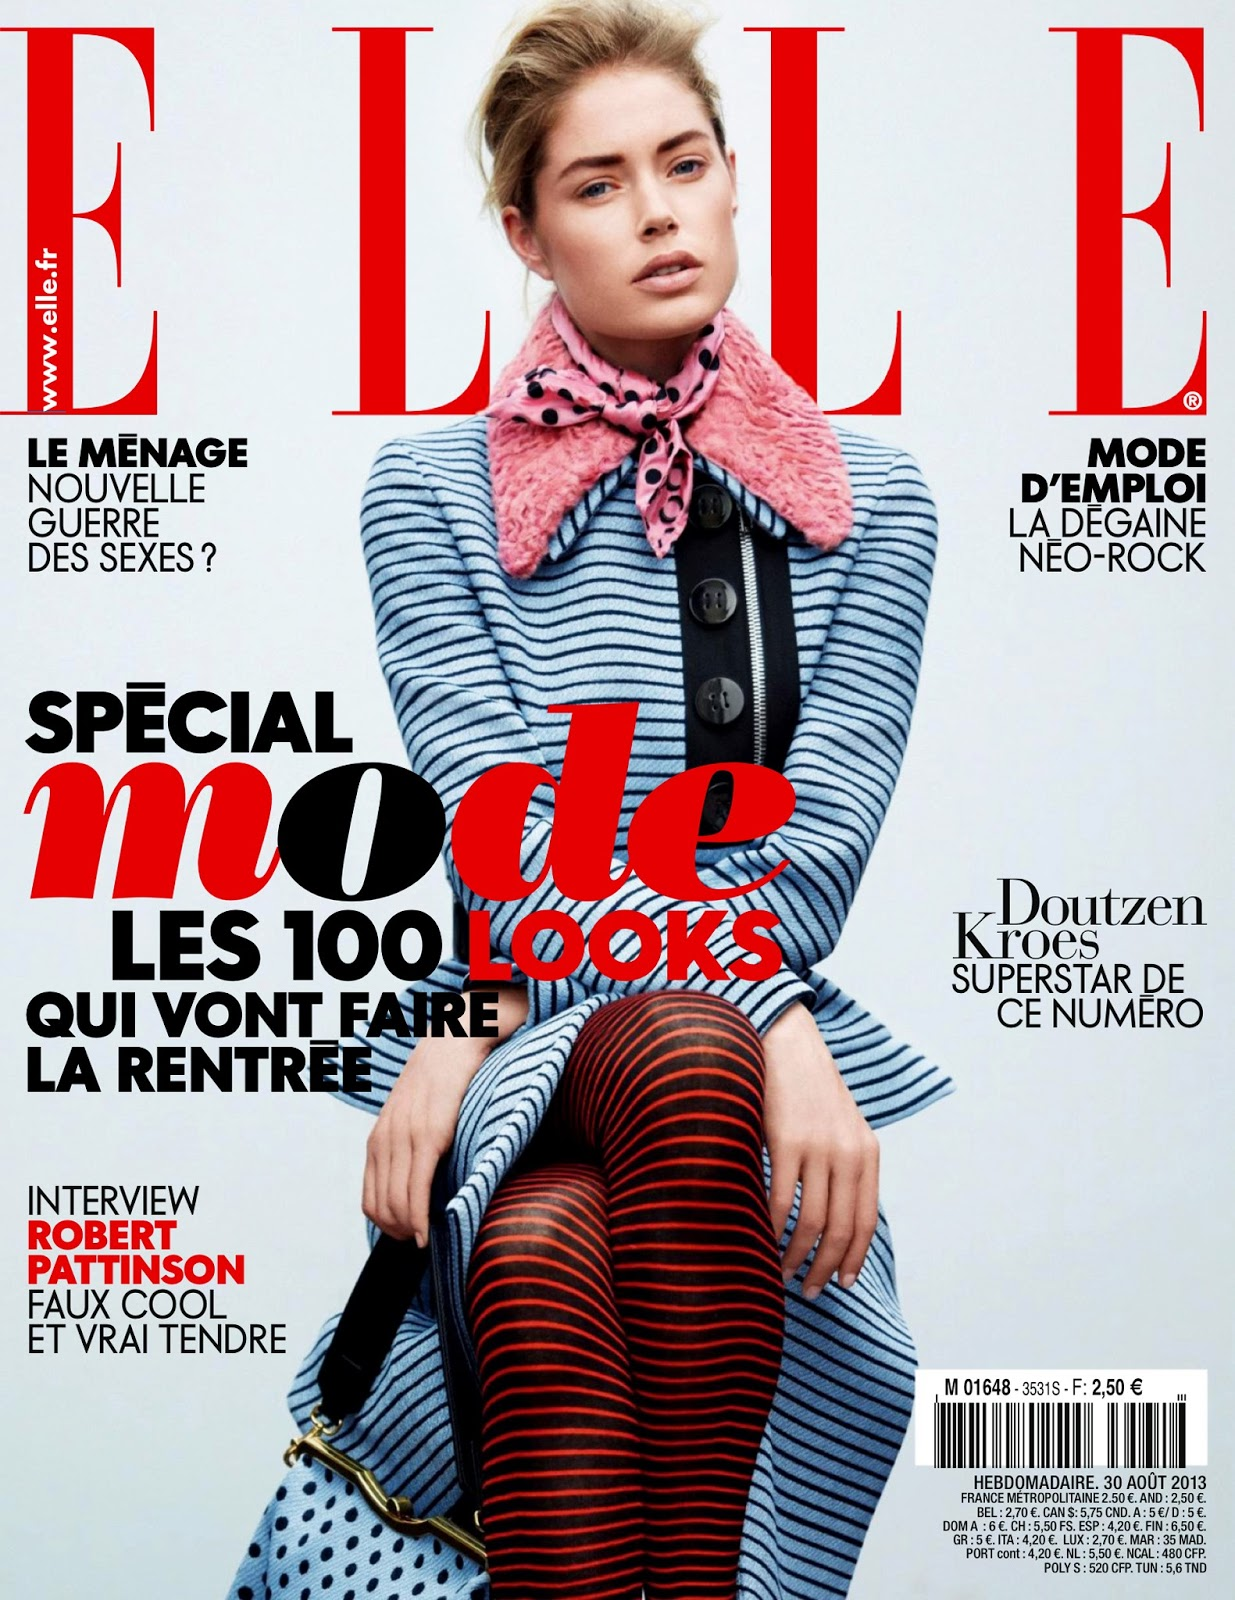 fashion_scans_remastered-doutzen_kroes-elle_france_1-issue_3531-scanned_by_vampirehorde-hq-1.jpg